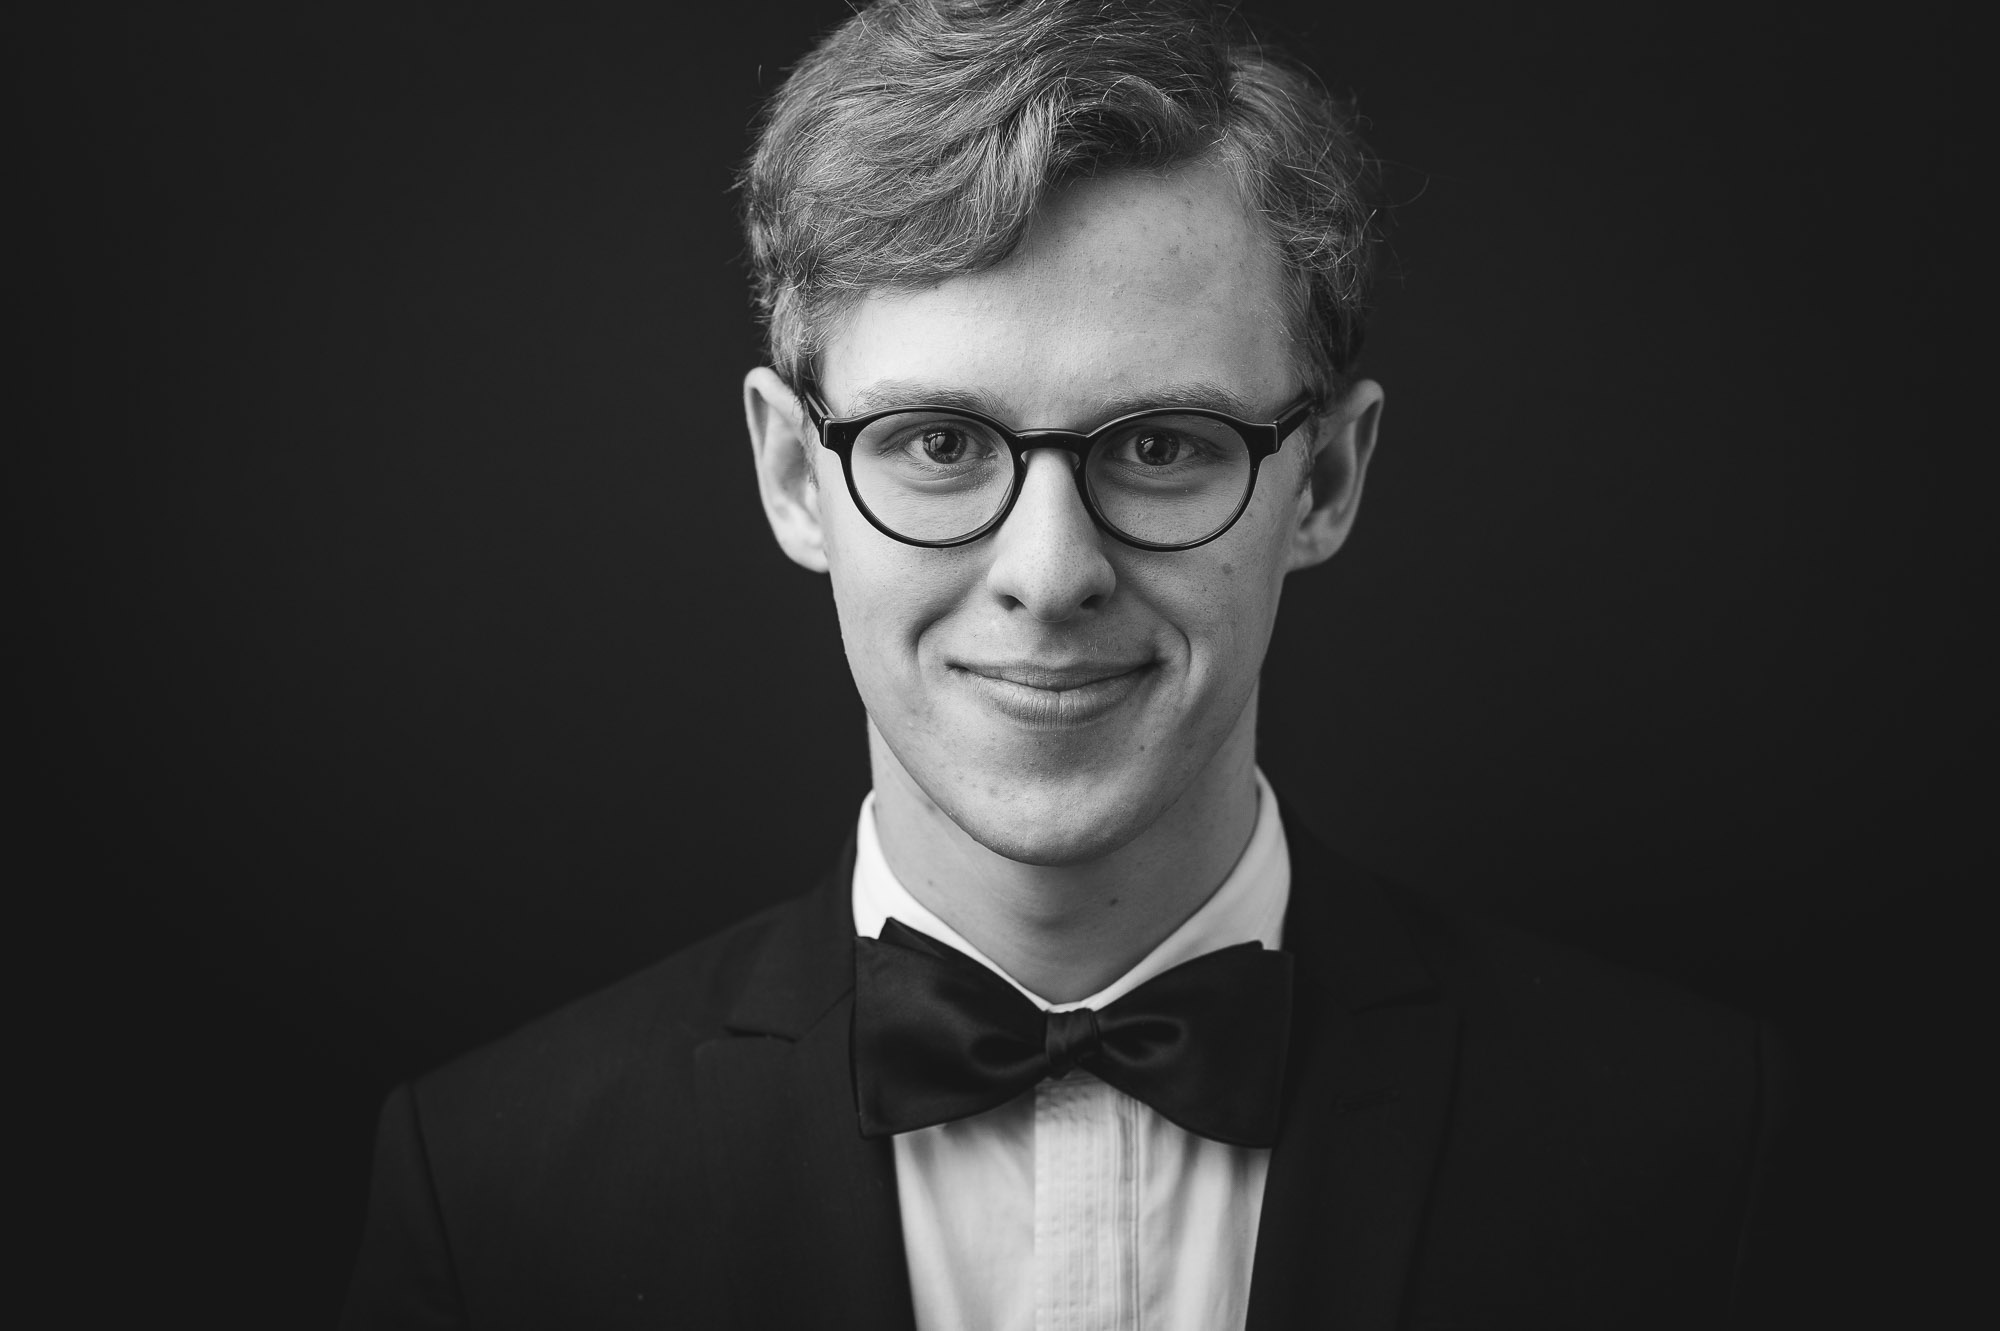 musician-christopher-gaudreault-black-and-white-headshot-suit